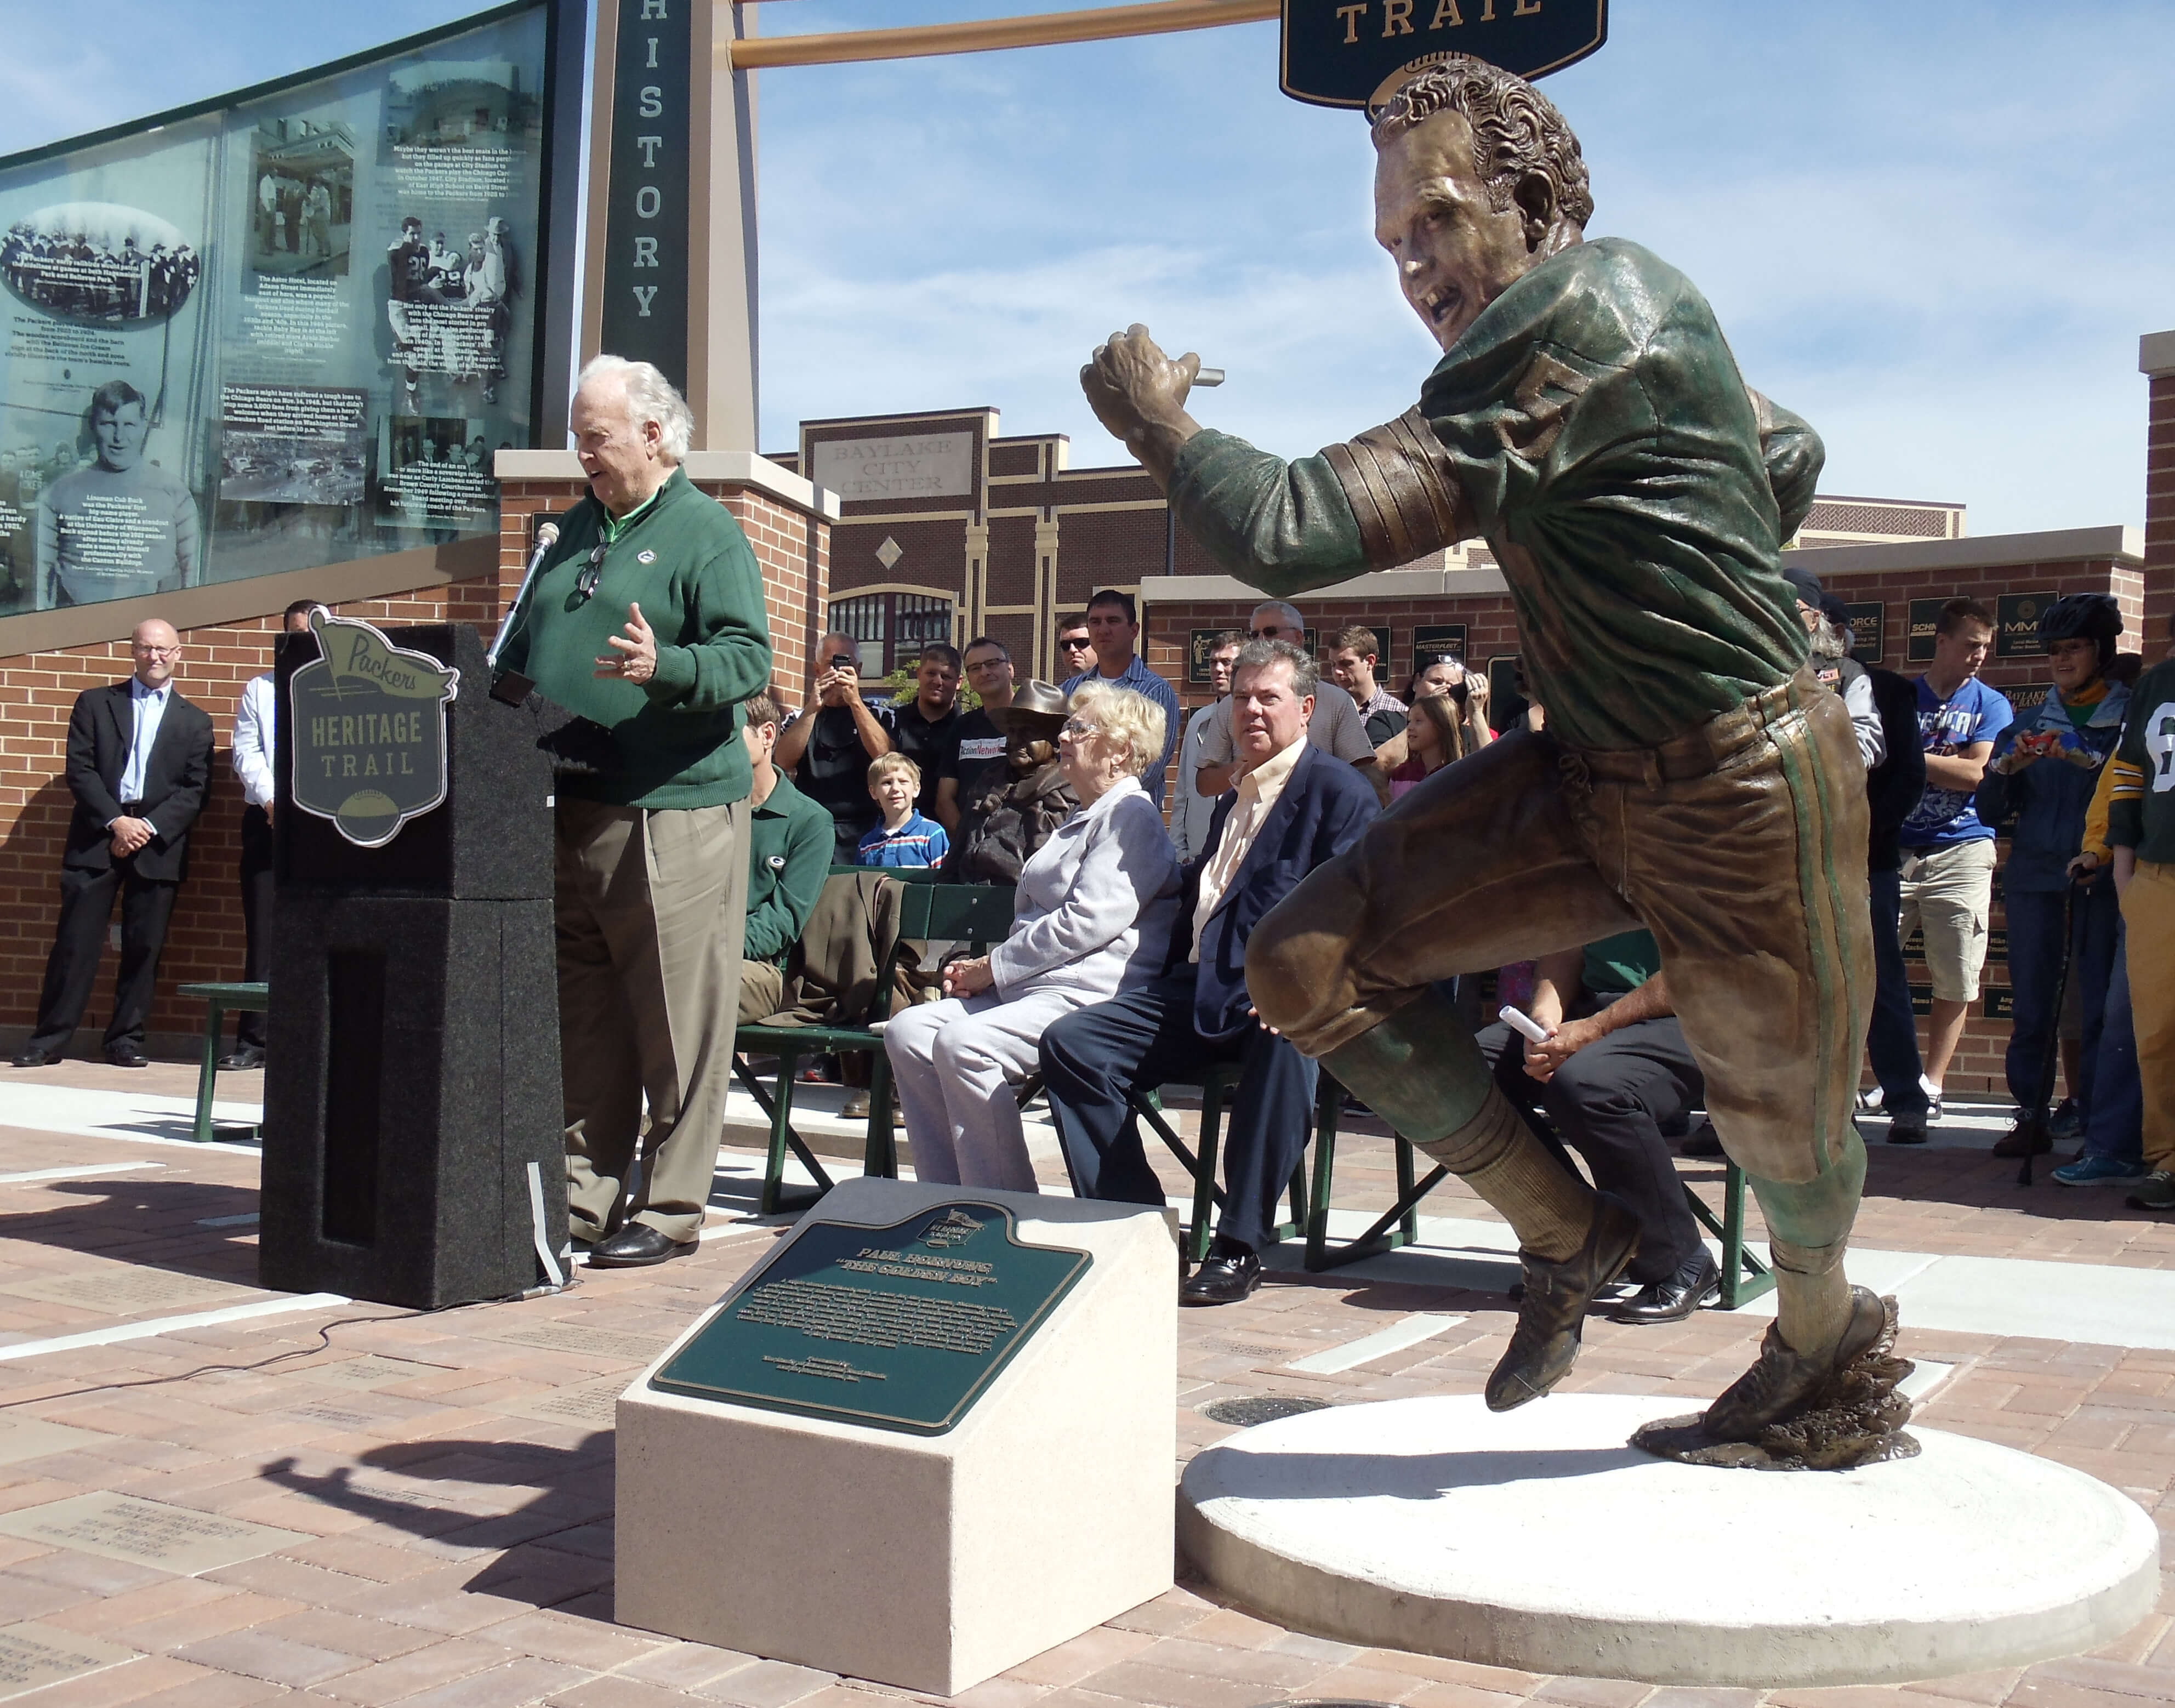 Statue of Paul Hornung, Green Bay Packers